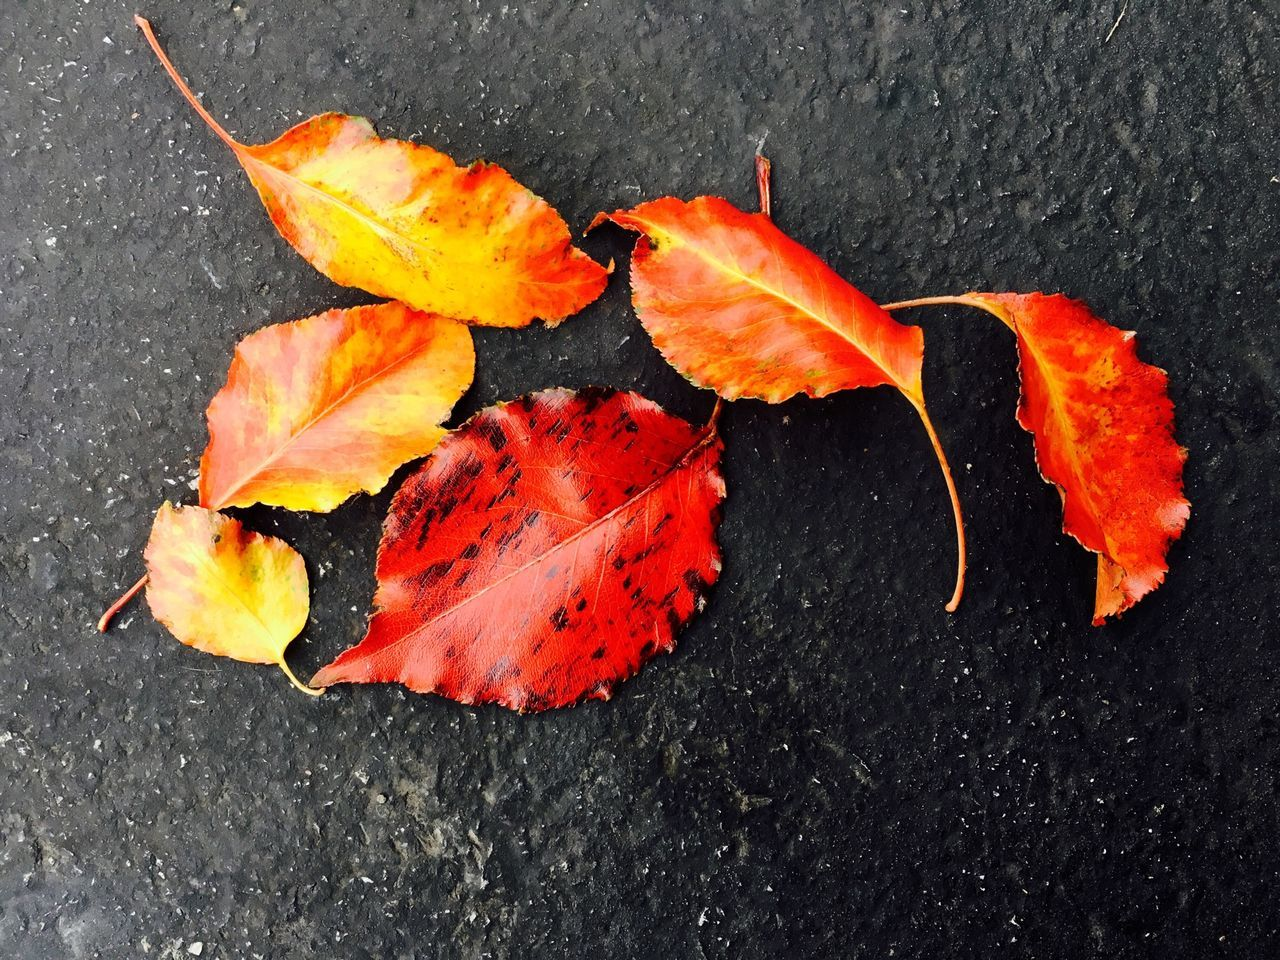 High Angle View Of Fallen Orange Autumn Leaves On Street